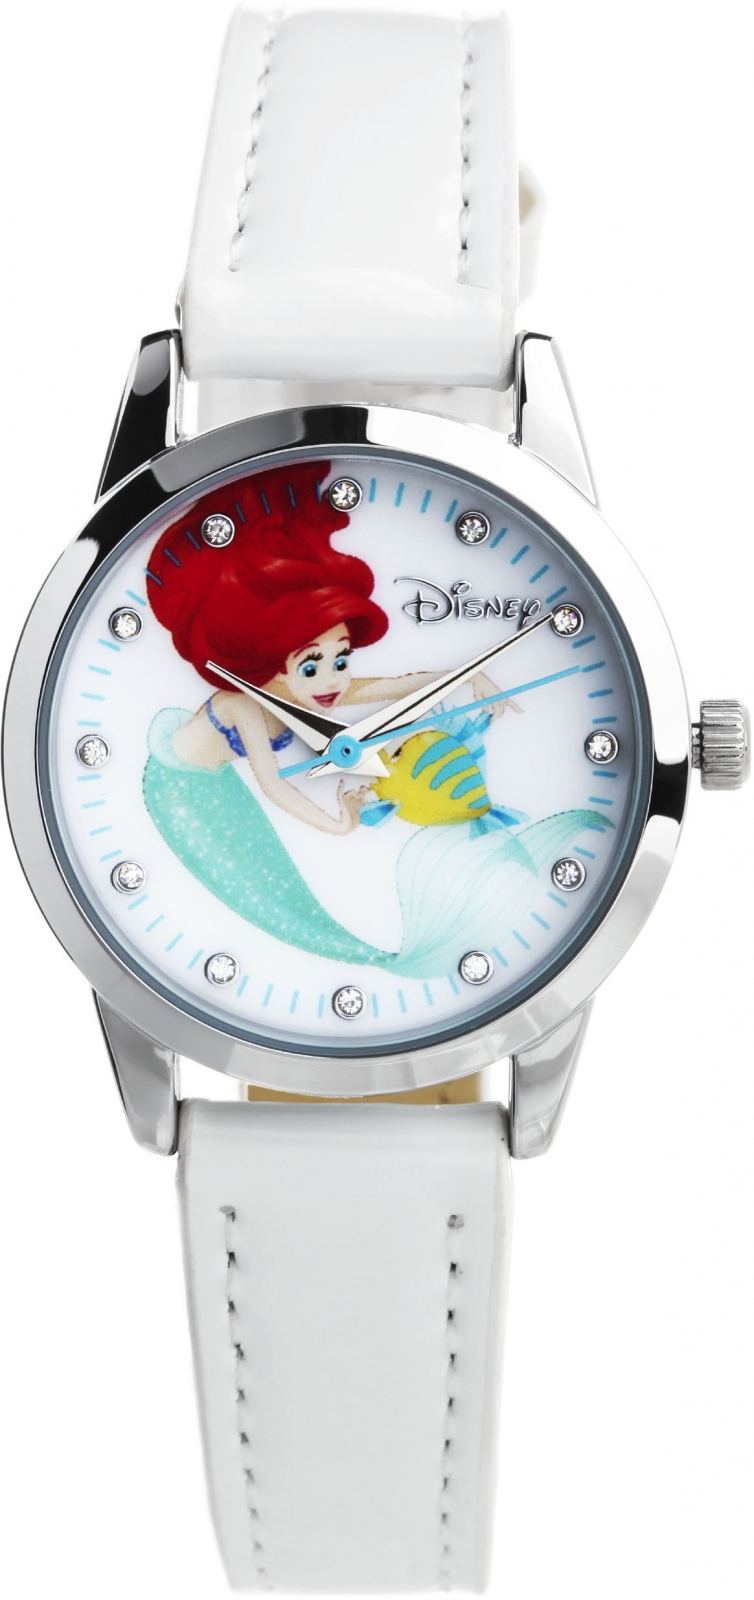 Disney by RFS D3801P rfs p670421 123w